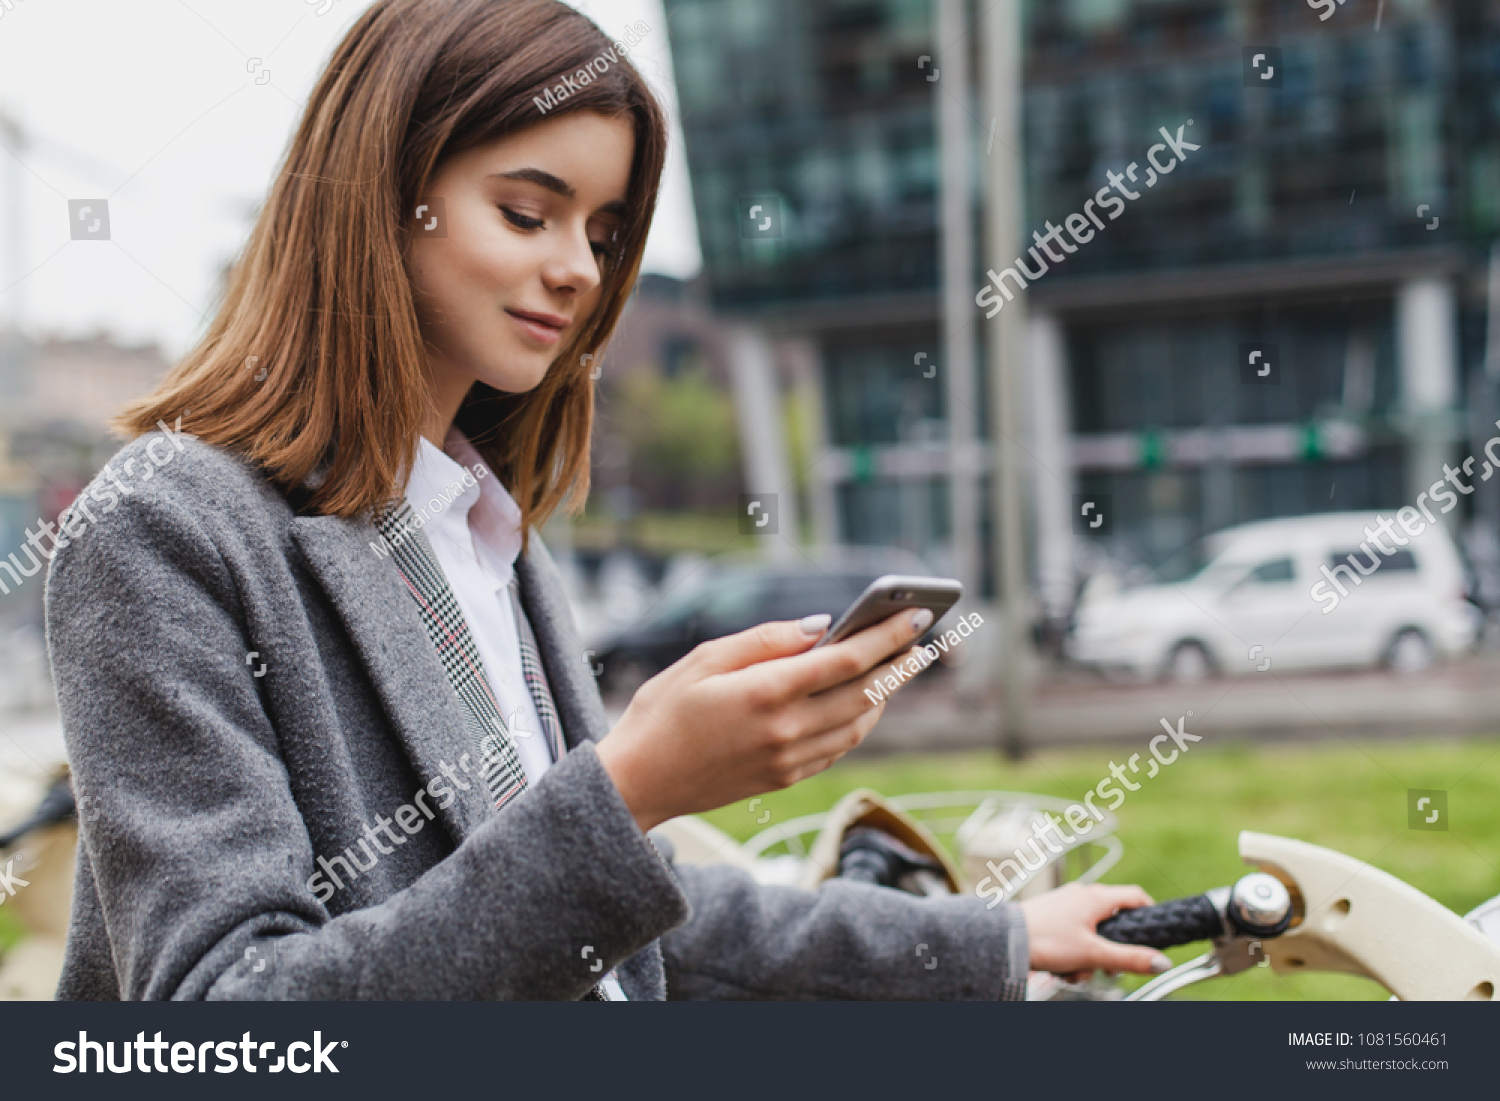 2019 year for lady- Girl stylish app how to use